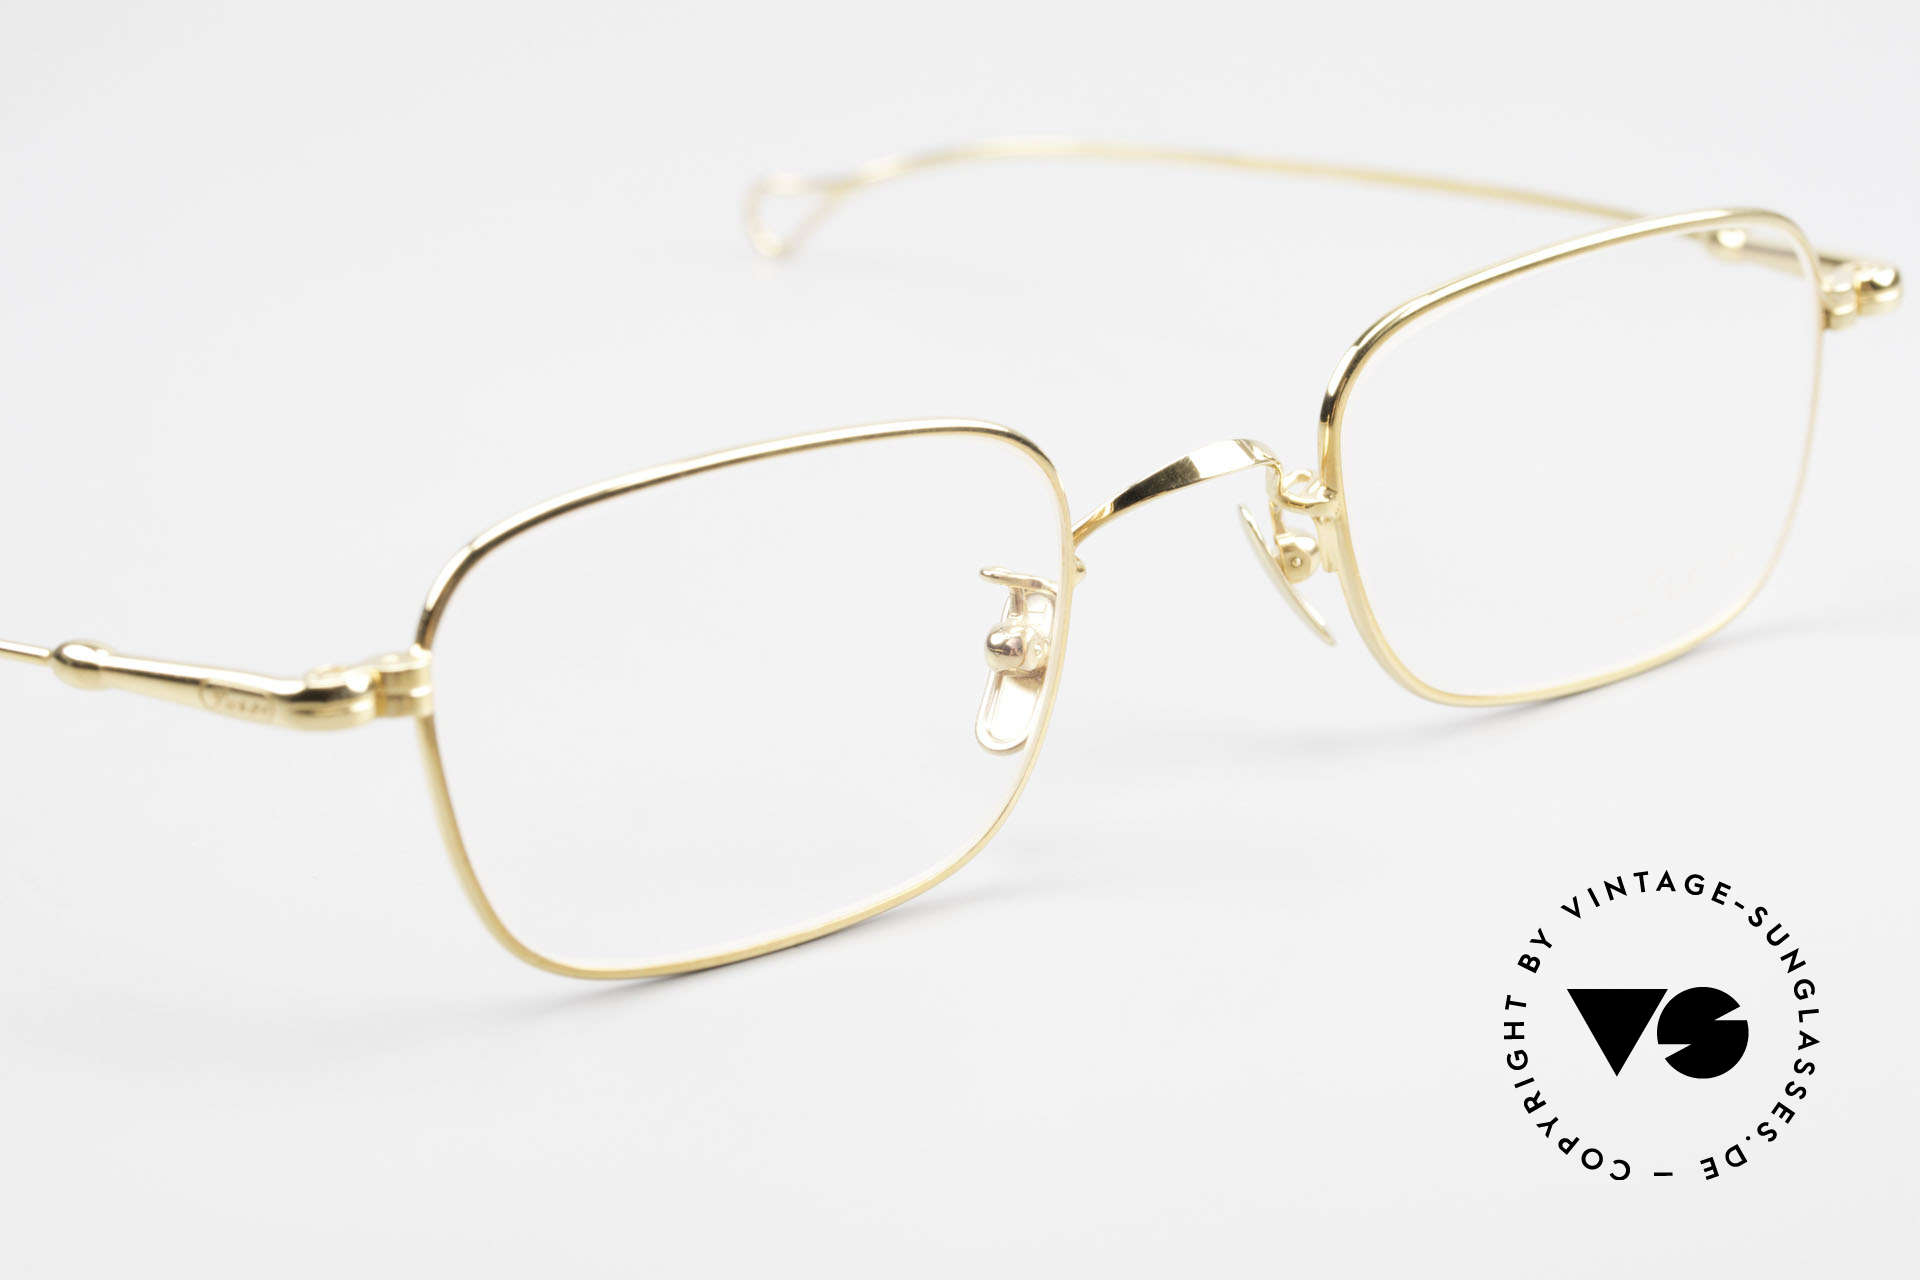 Lunor V 109 Lunor Men's Frame Gold Plated, from the 2011's collection, but in a well-known quality, Made for Men